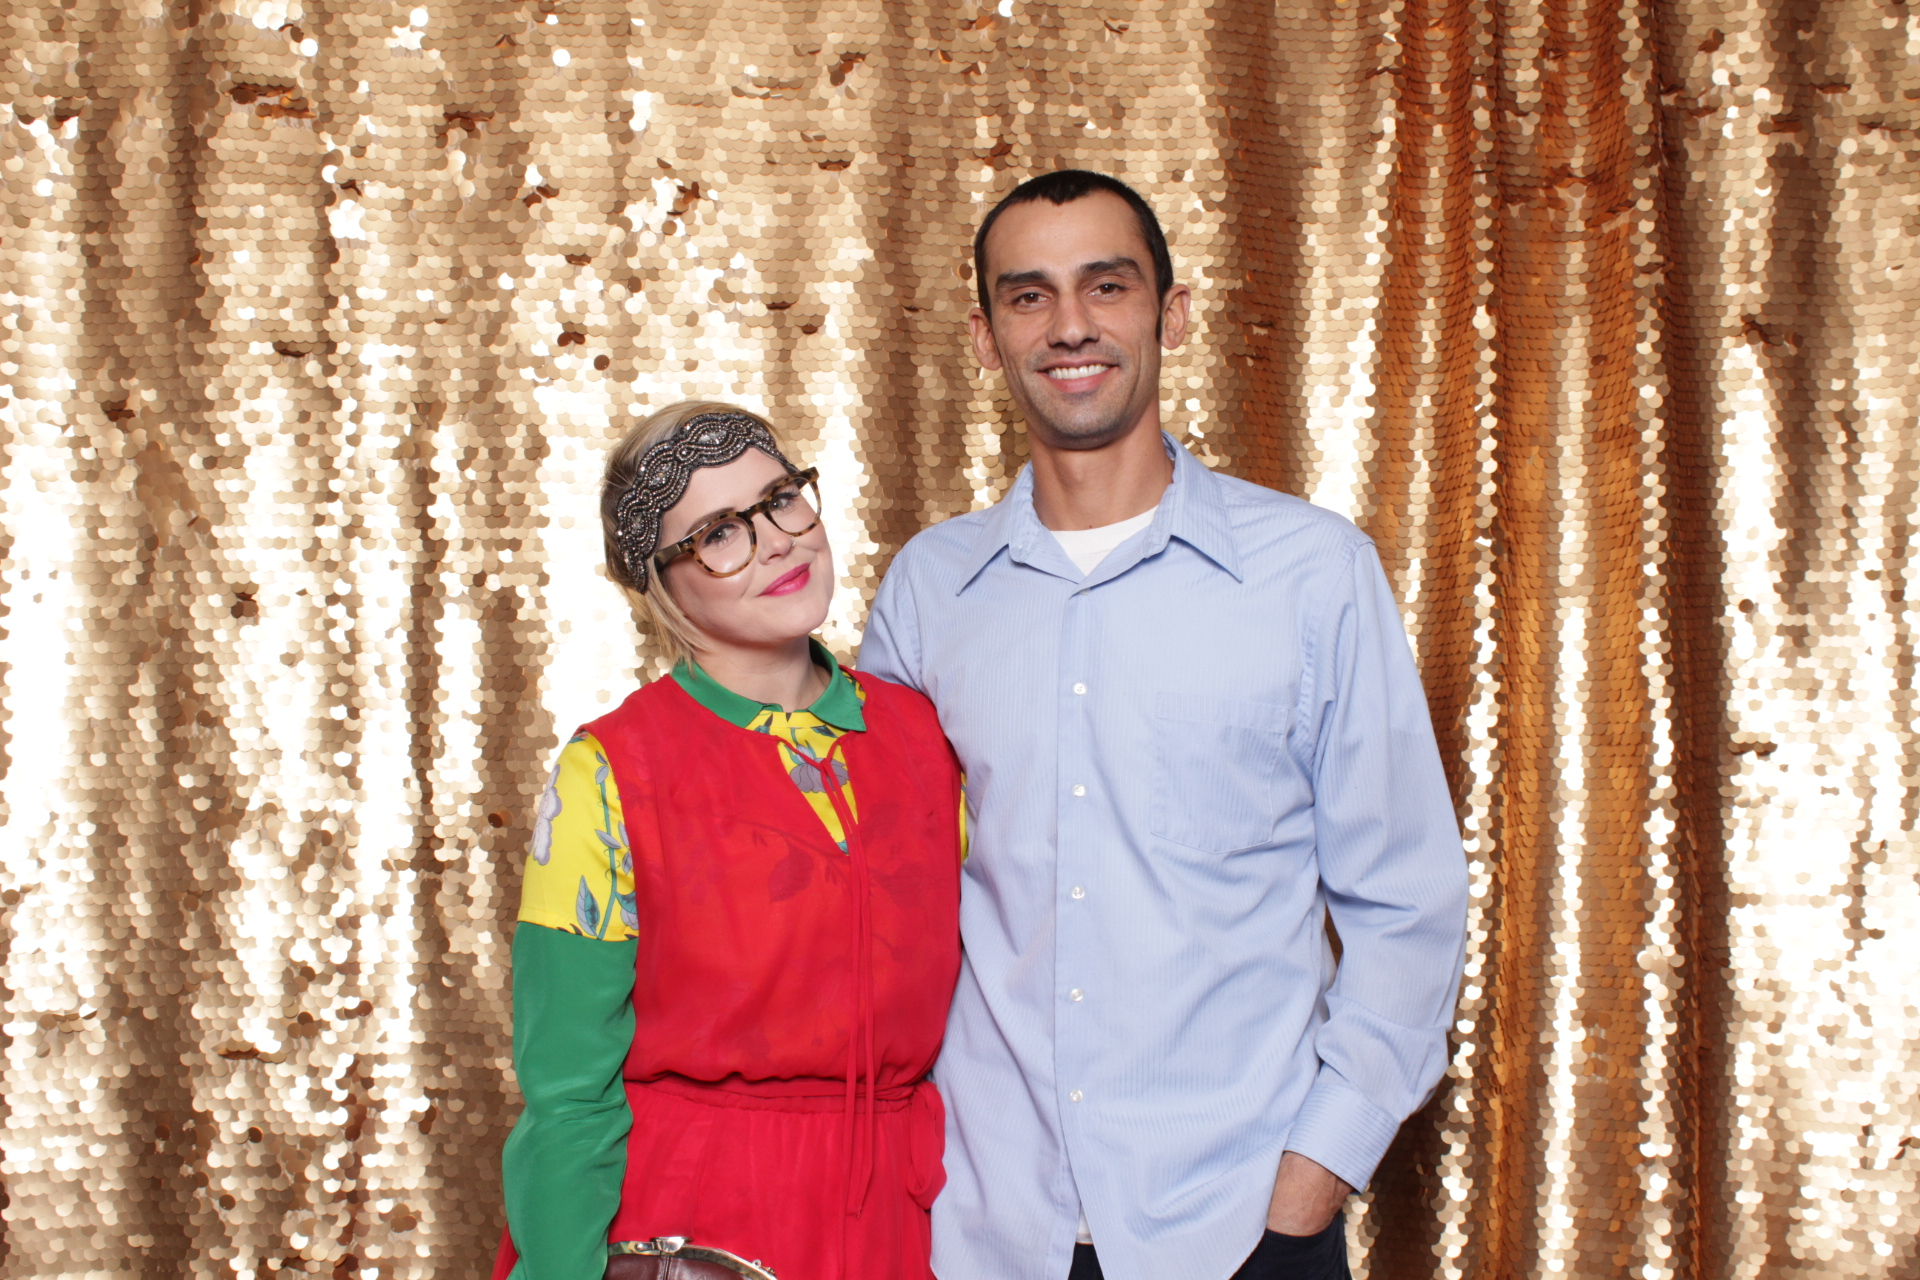 Minneapolis_Photo_Booth_rentals (17).jpg